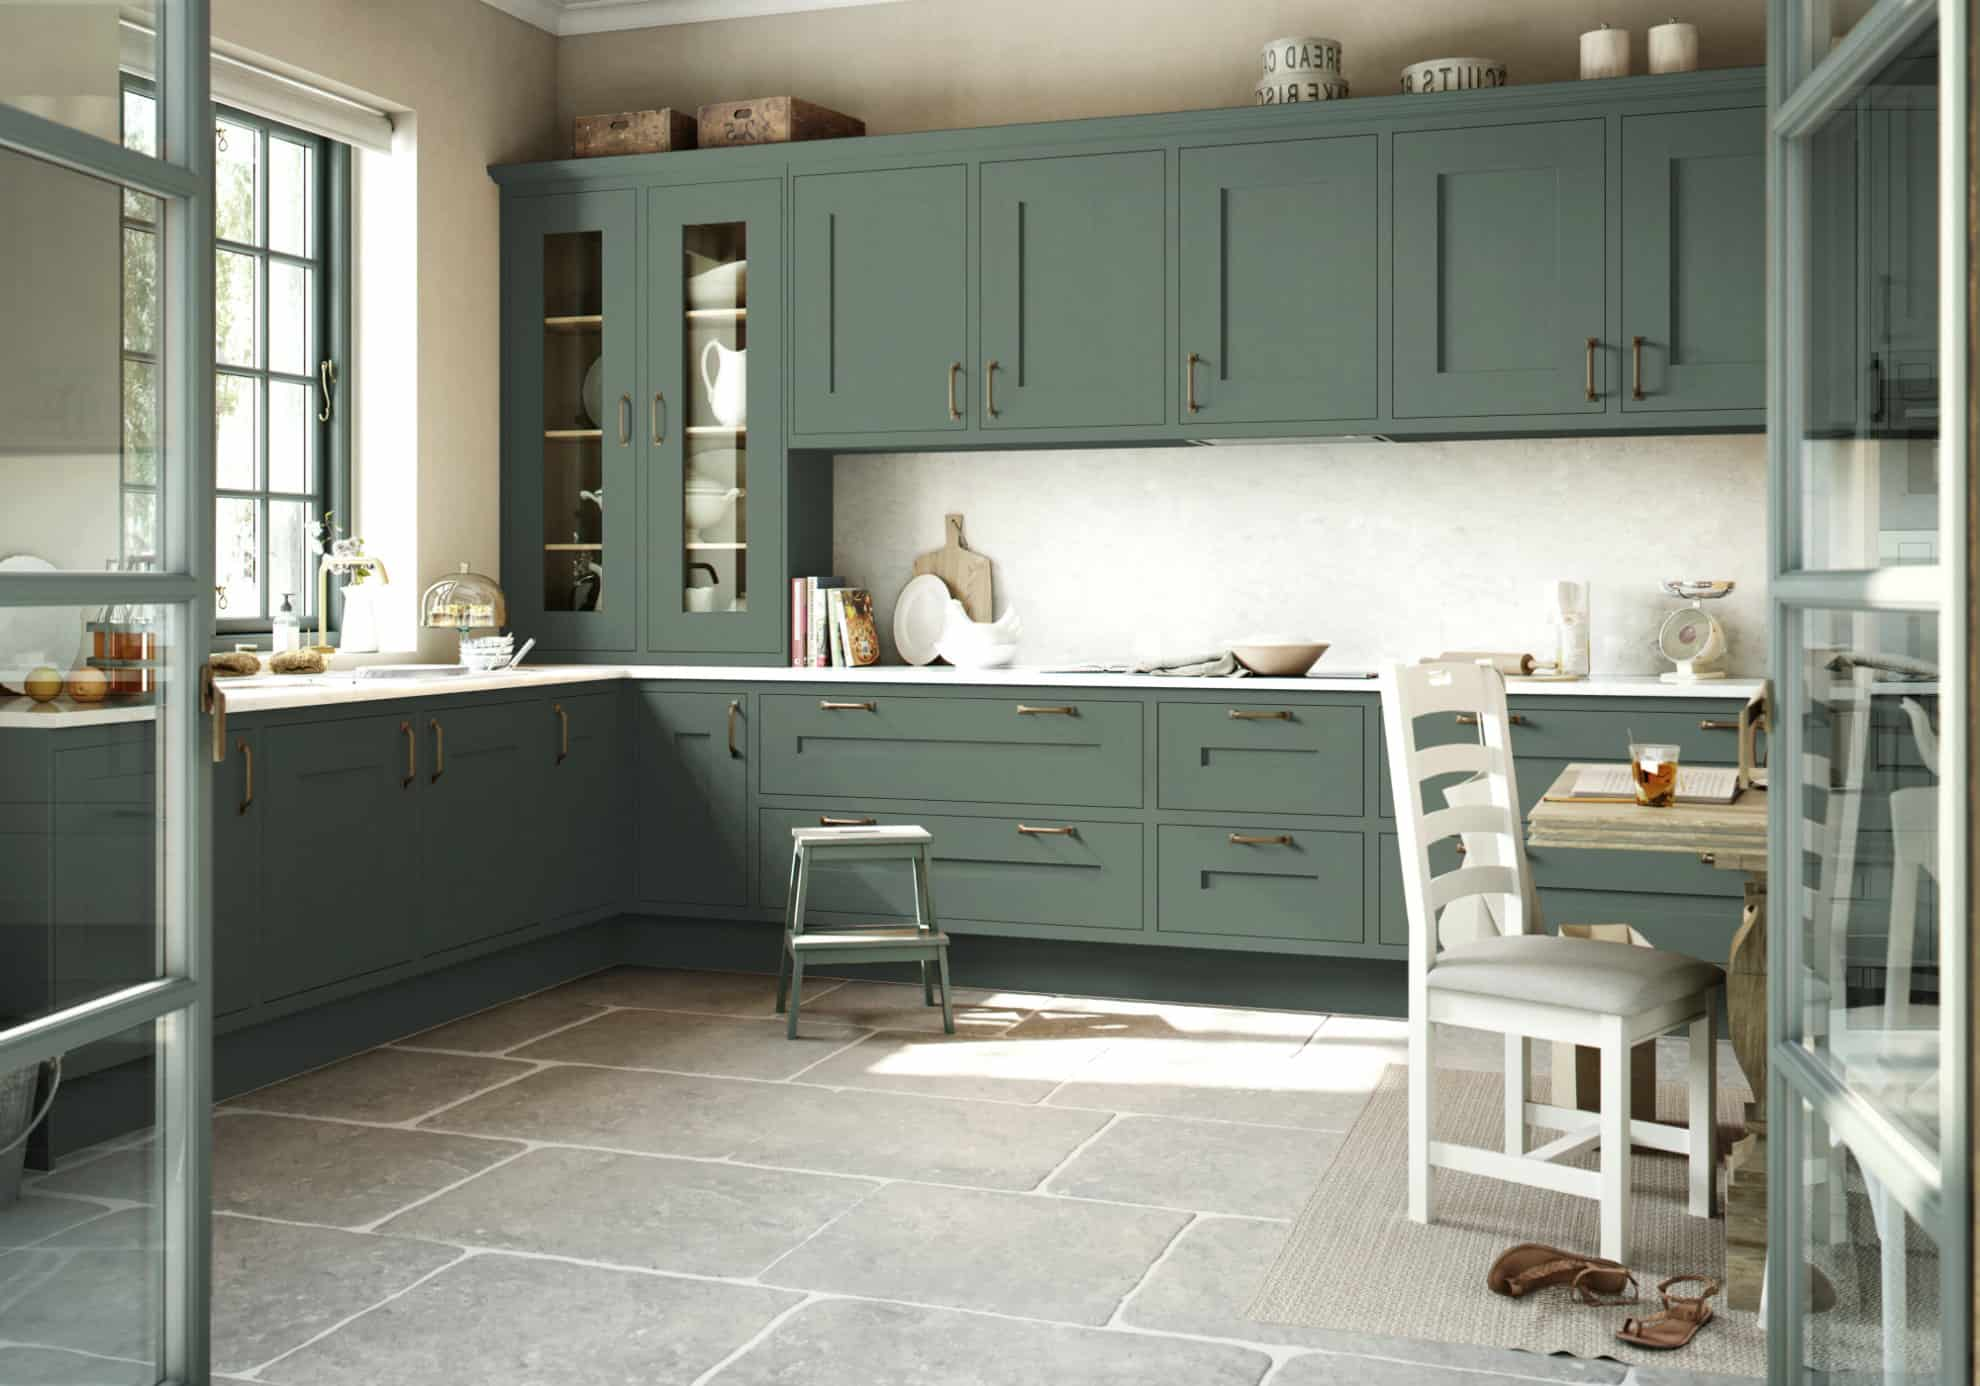 Gawsworth kitchen in green